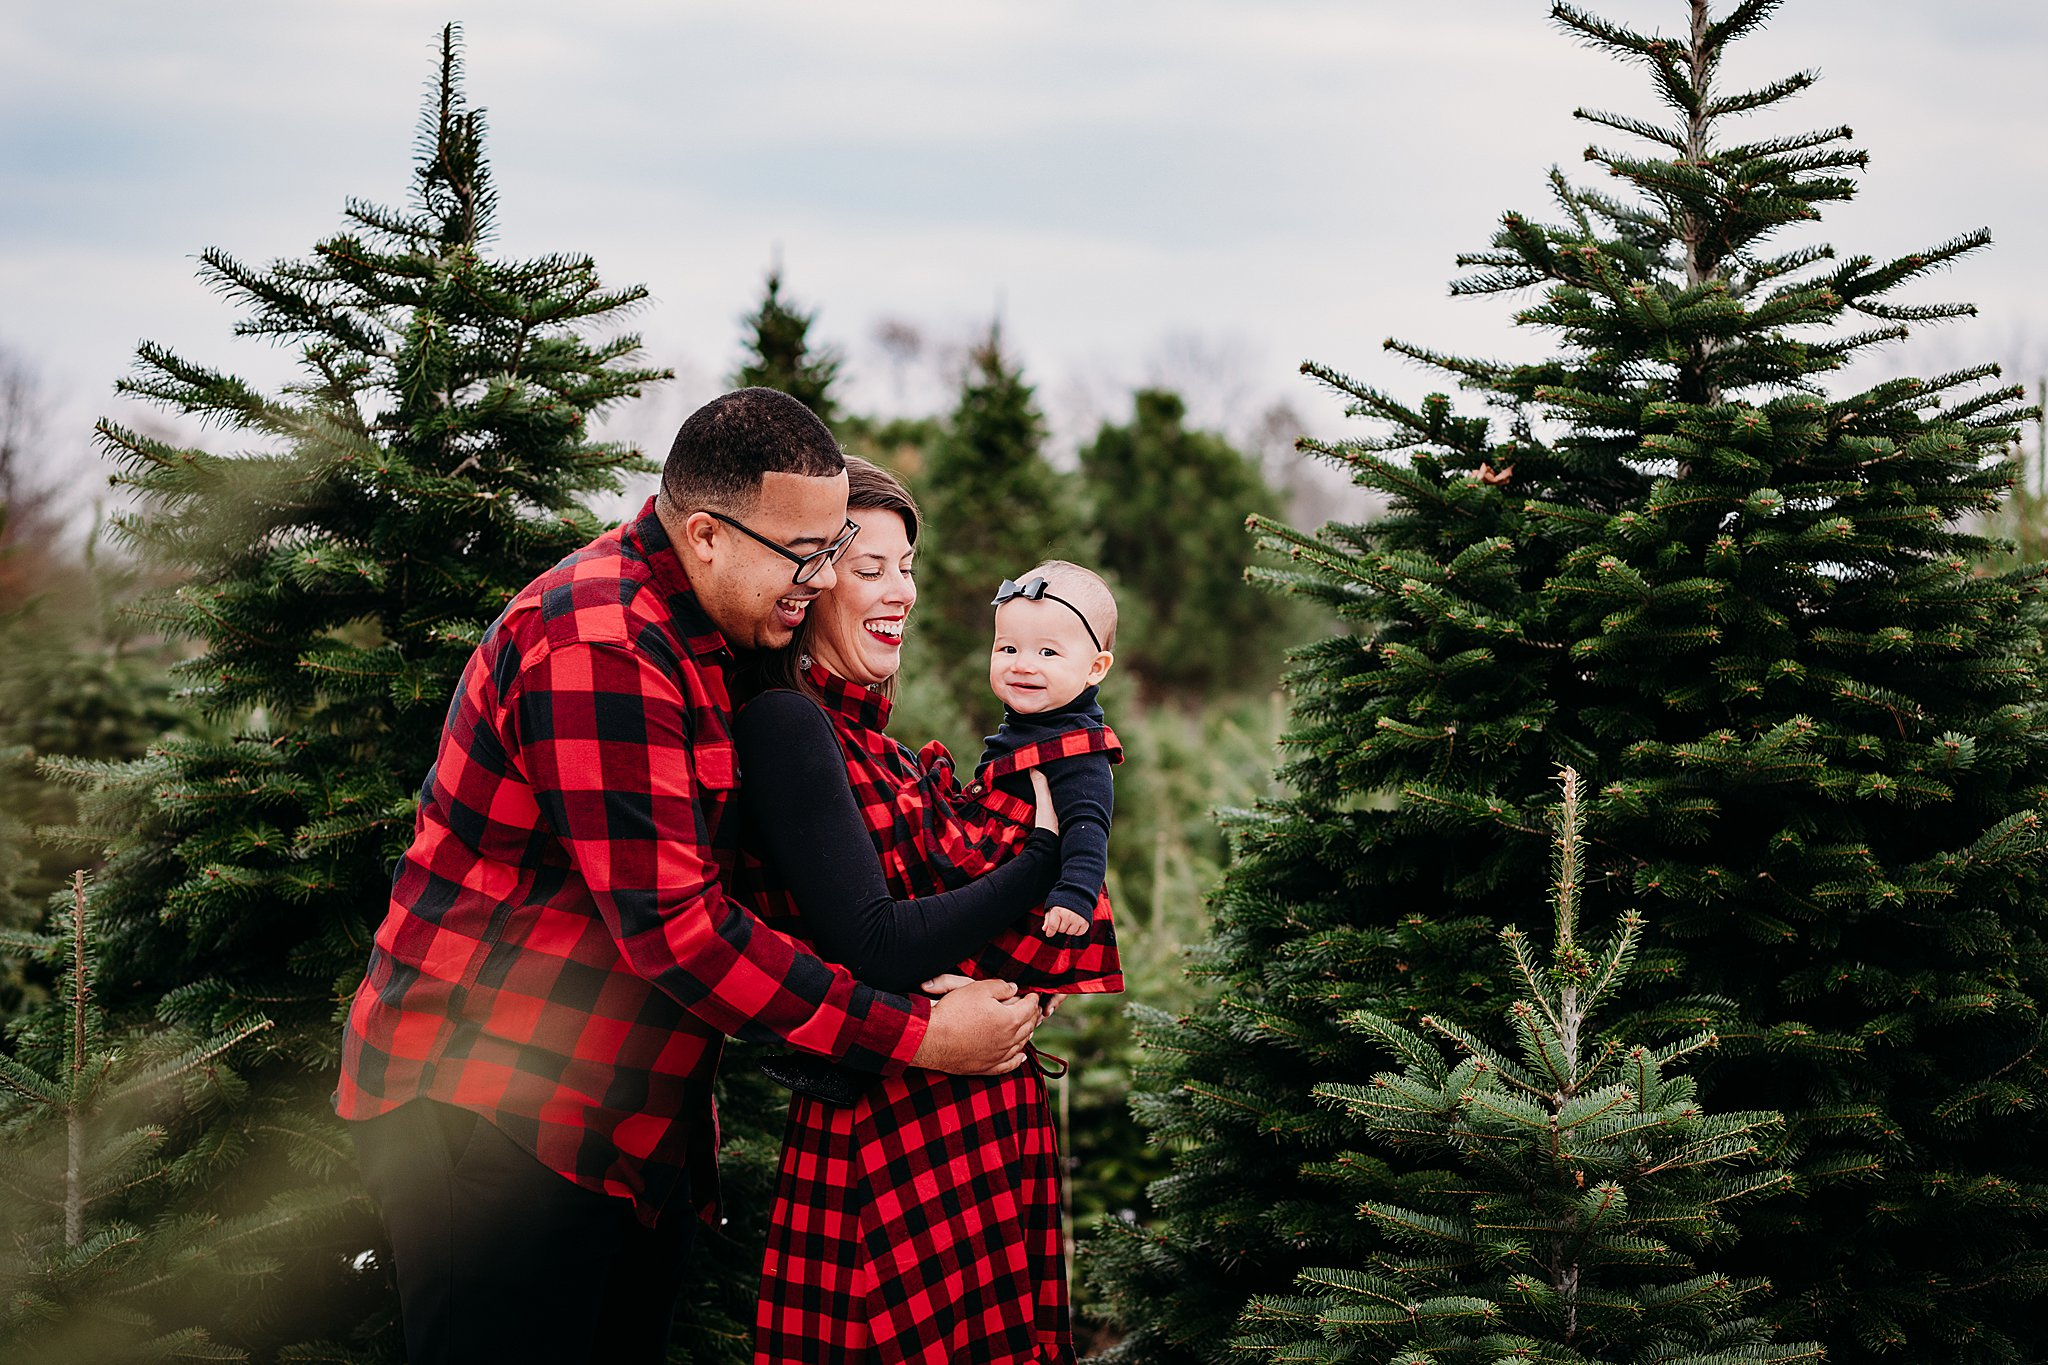 Christmas Tree Farm Photography near Philadelphia_ desiree hoelzle photography_0004.jpg